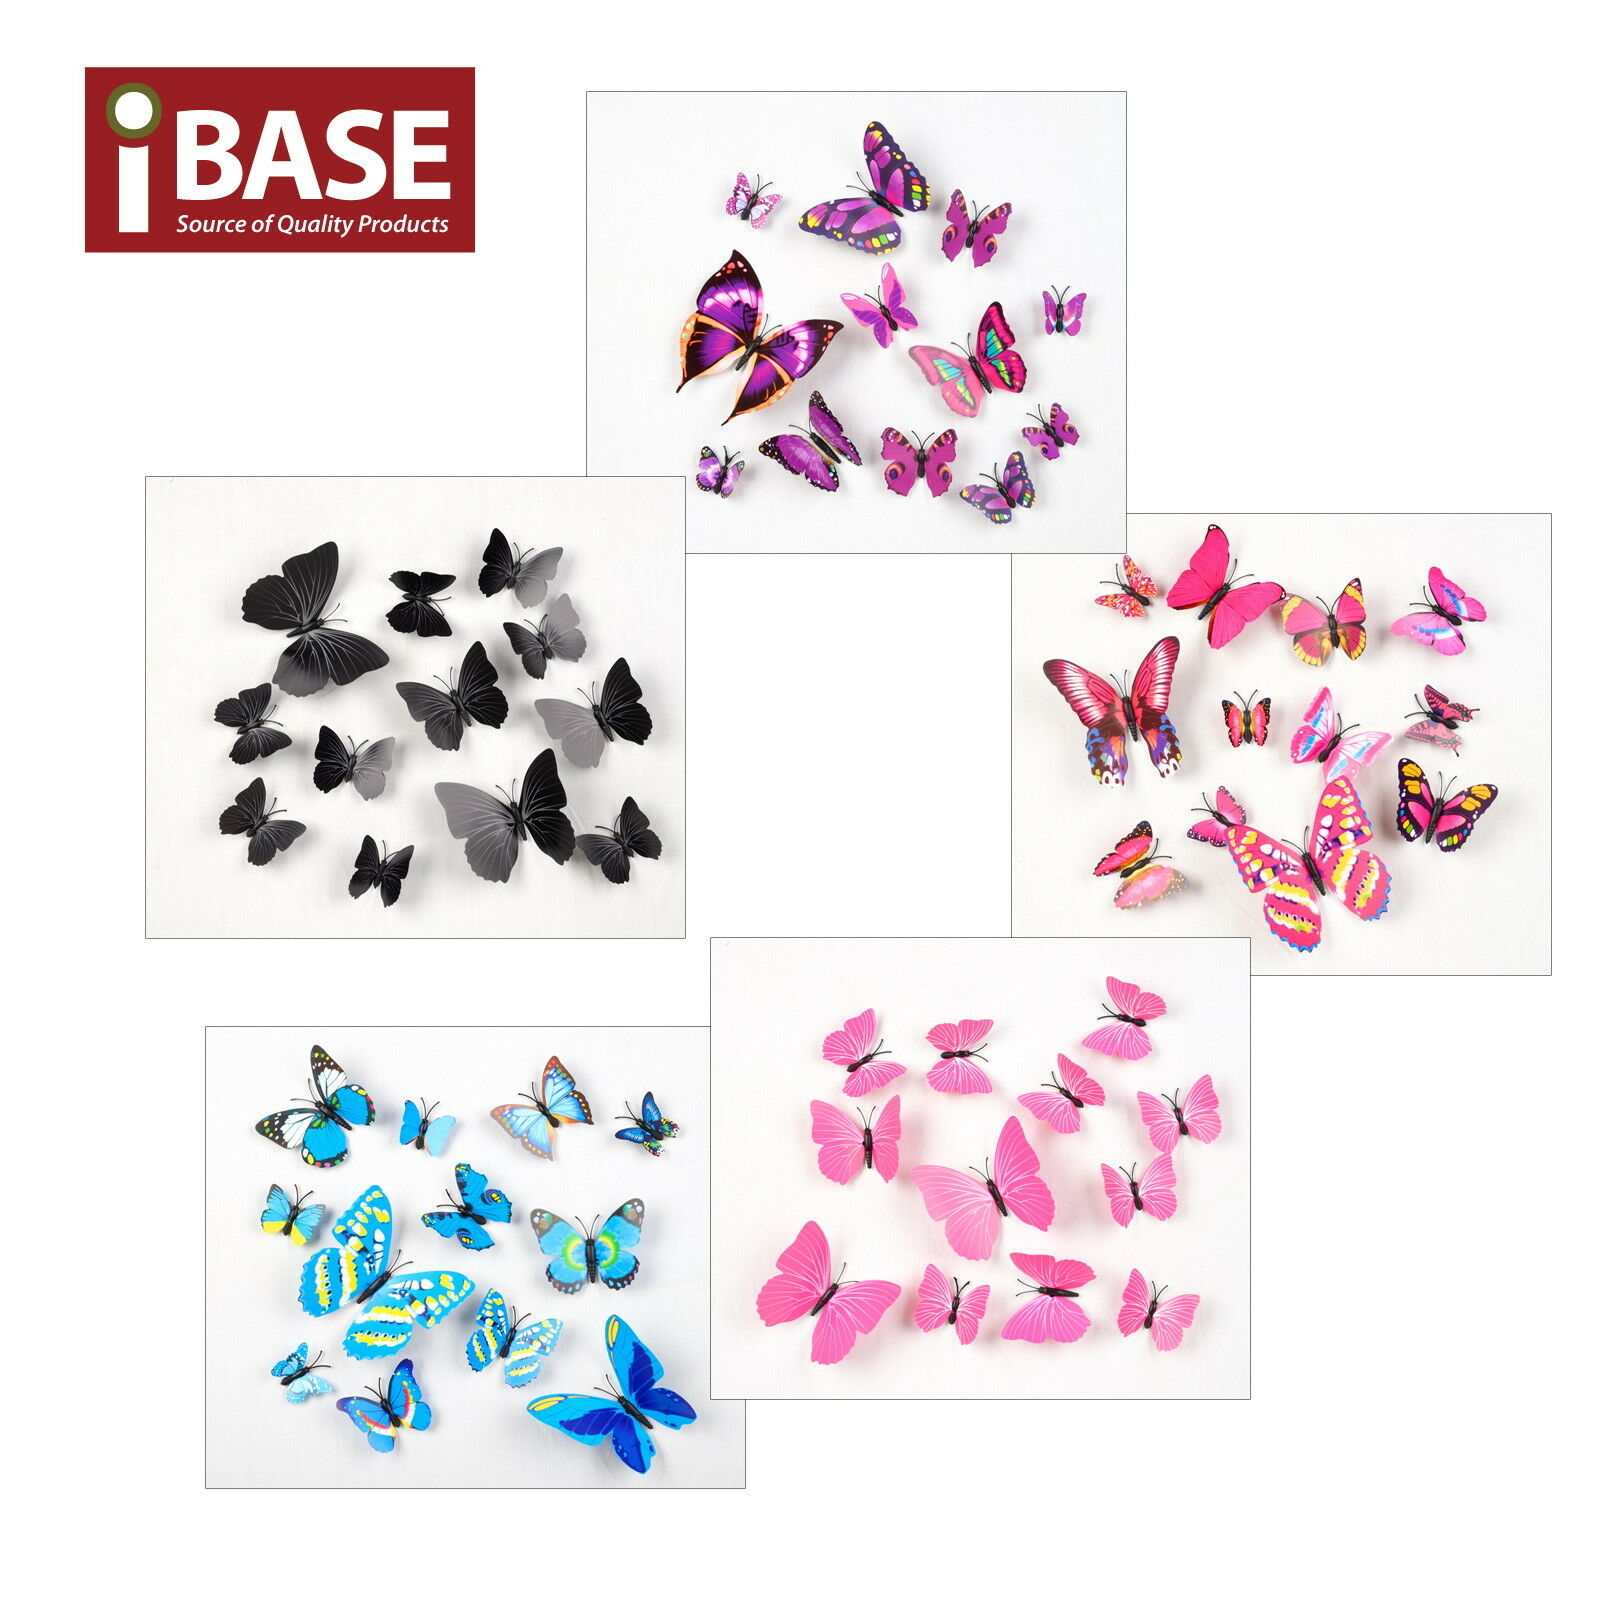 Home Decoration - 12PCS 3D DIY Wall Decal Stickers Butterfly Home Room Art Decor Decorations AU OZ